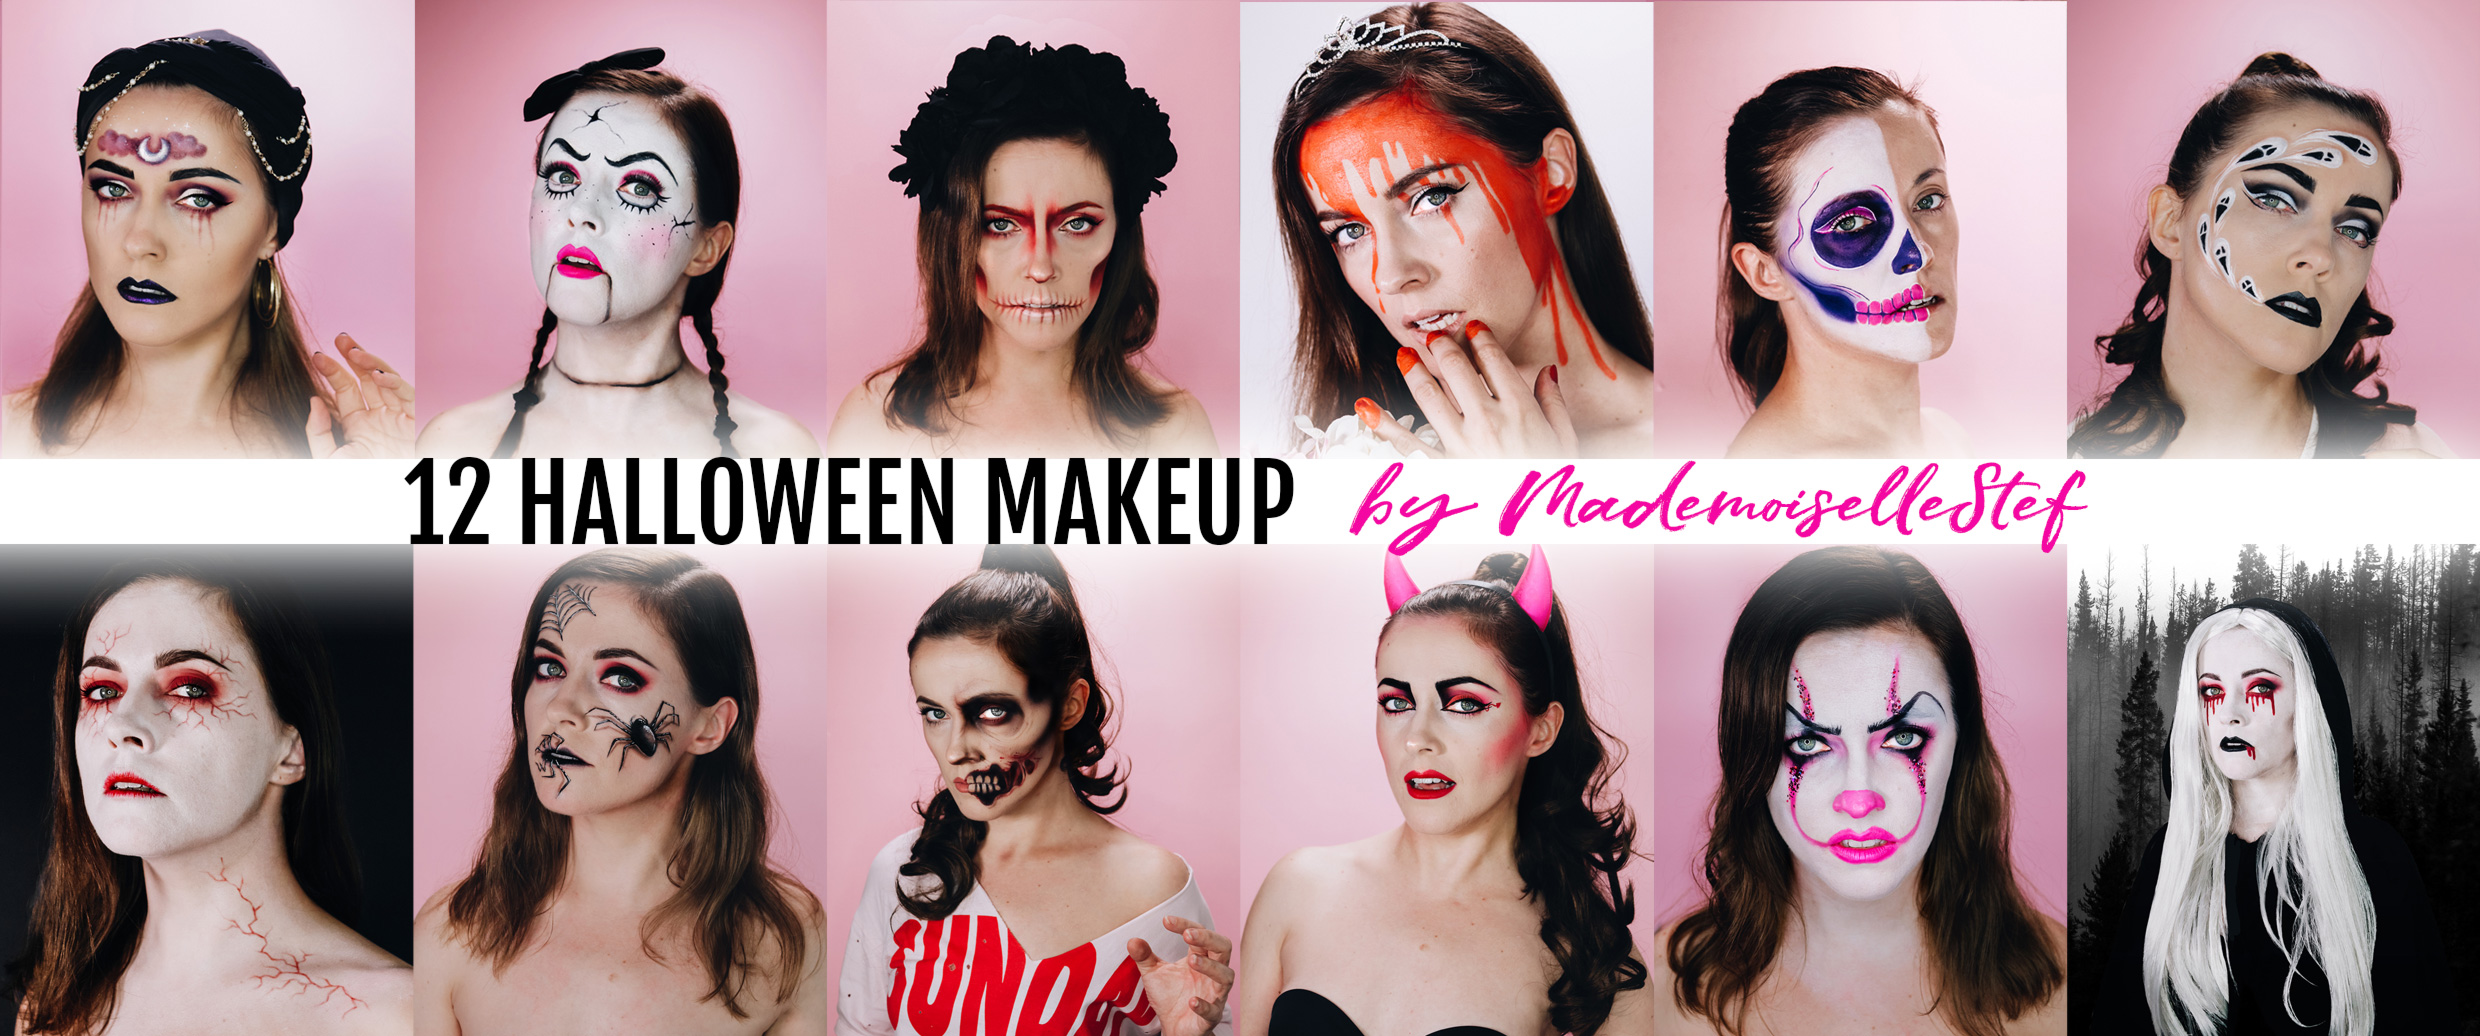 halloween18 12 makeup ideas